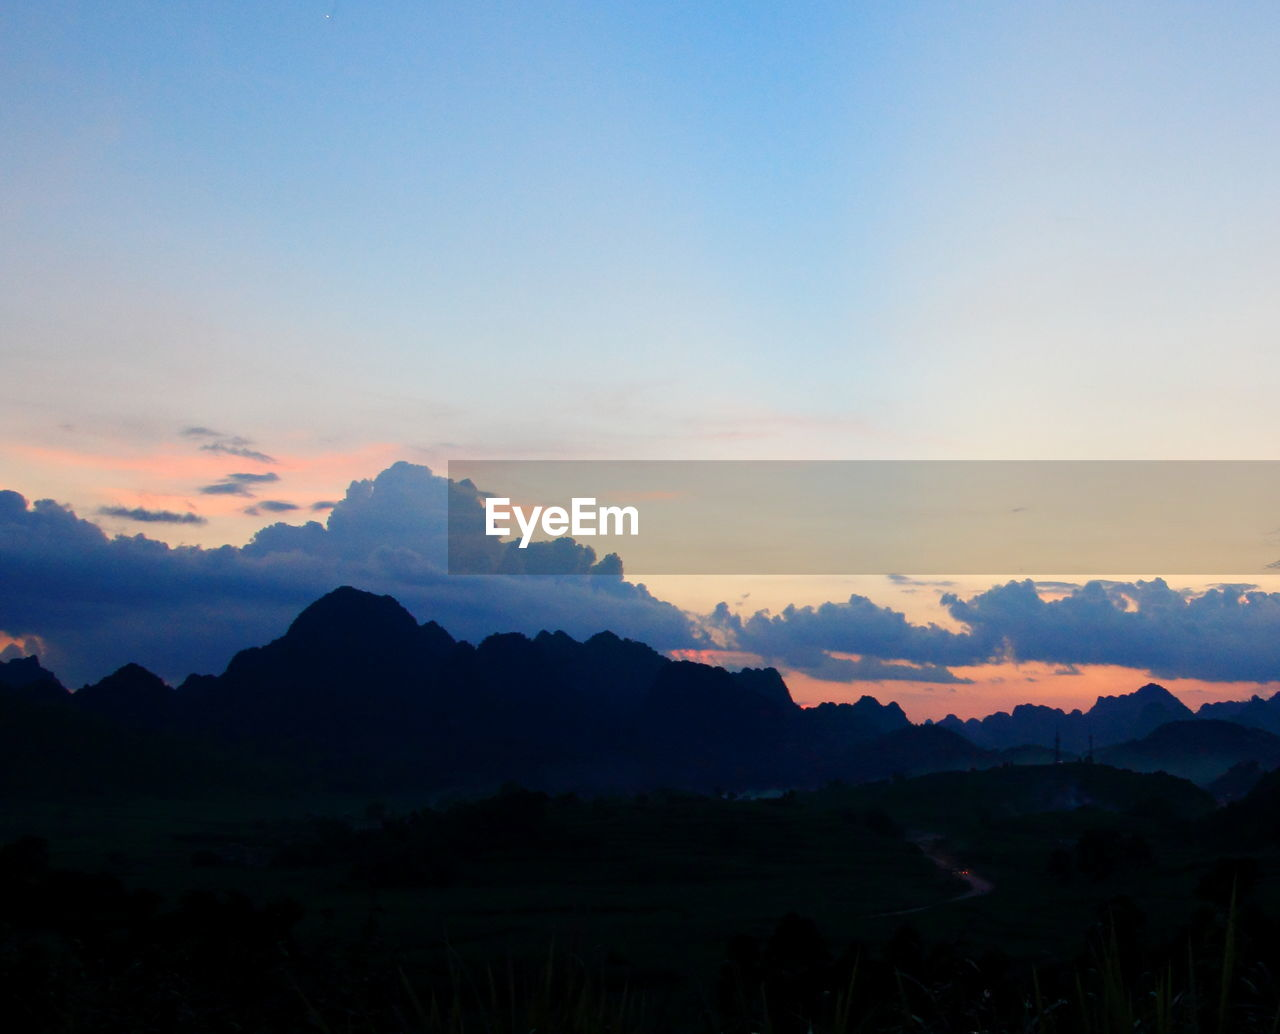 sunset, silhouette, nature, mountain, sky, no people, beauty in nature, landscape, outdoors, scenics, day